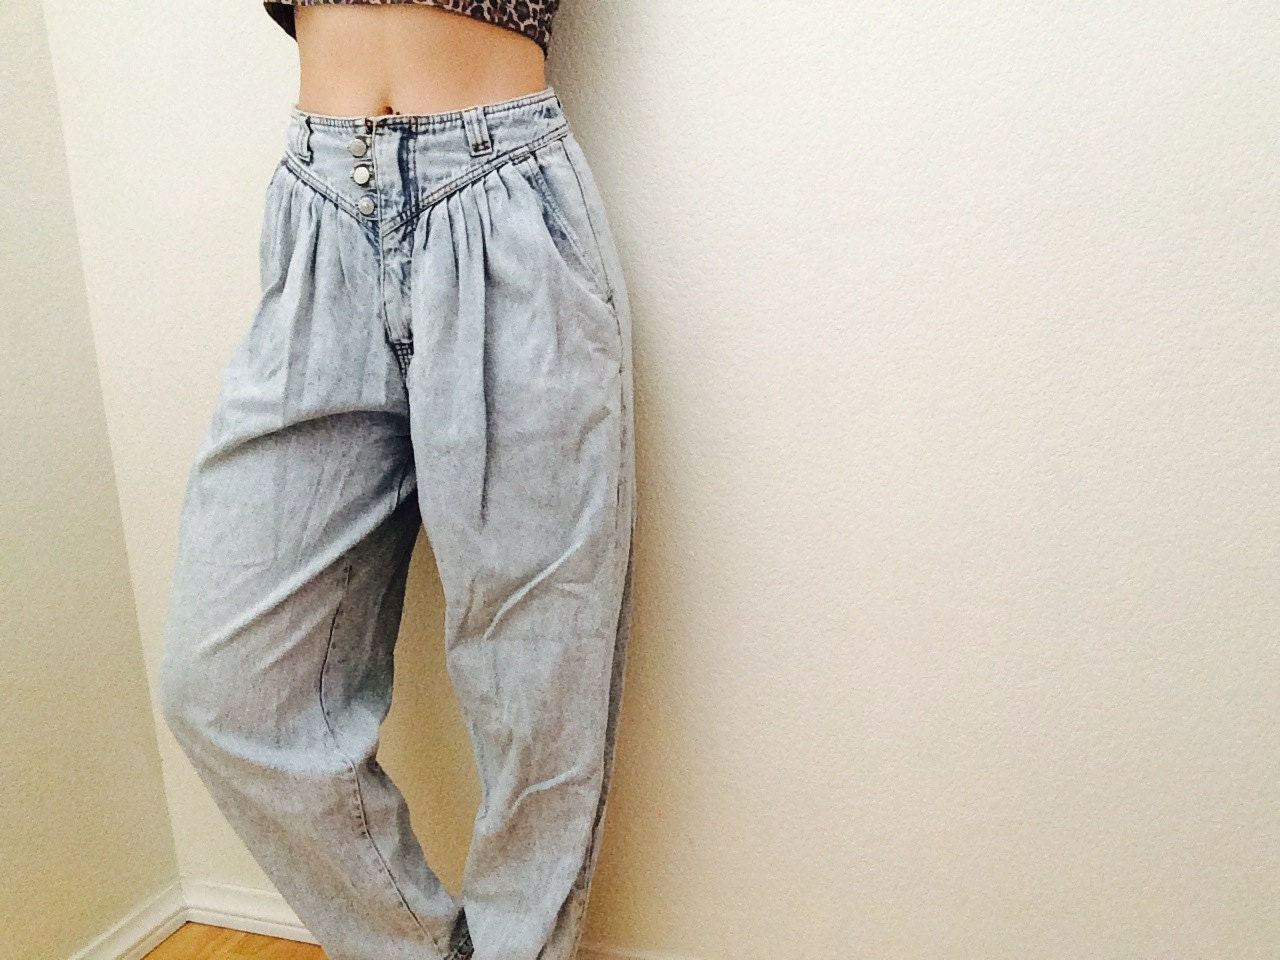 You searched for: parachute pant! Etsy is the home to thousands of handmade, vintage, and one-of-a-kind products and gifts related to your search. No matter what you're looking for or where you are in the world, our global marketplace of sellers can help you find unique and affordable options. Let's get started!